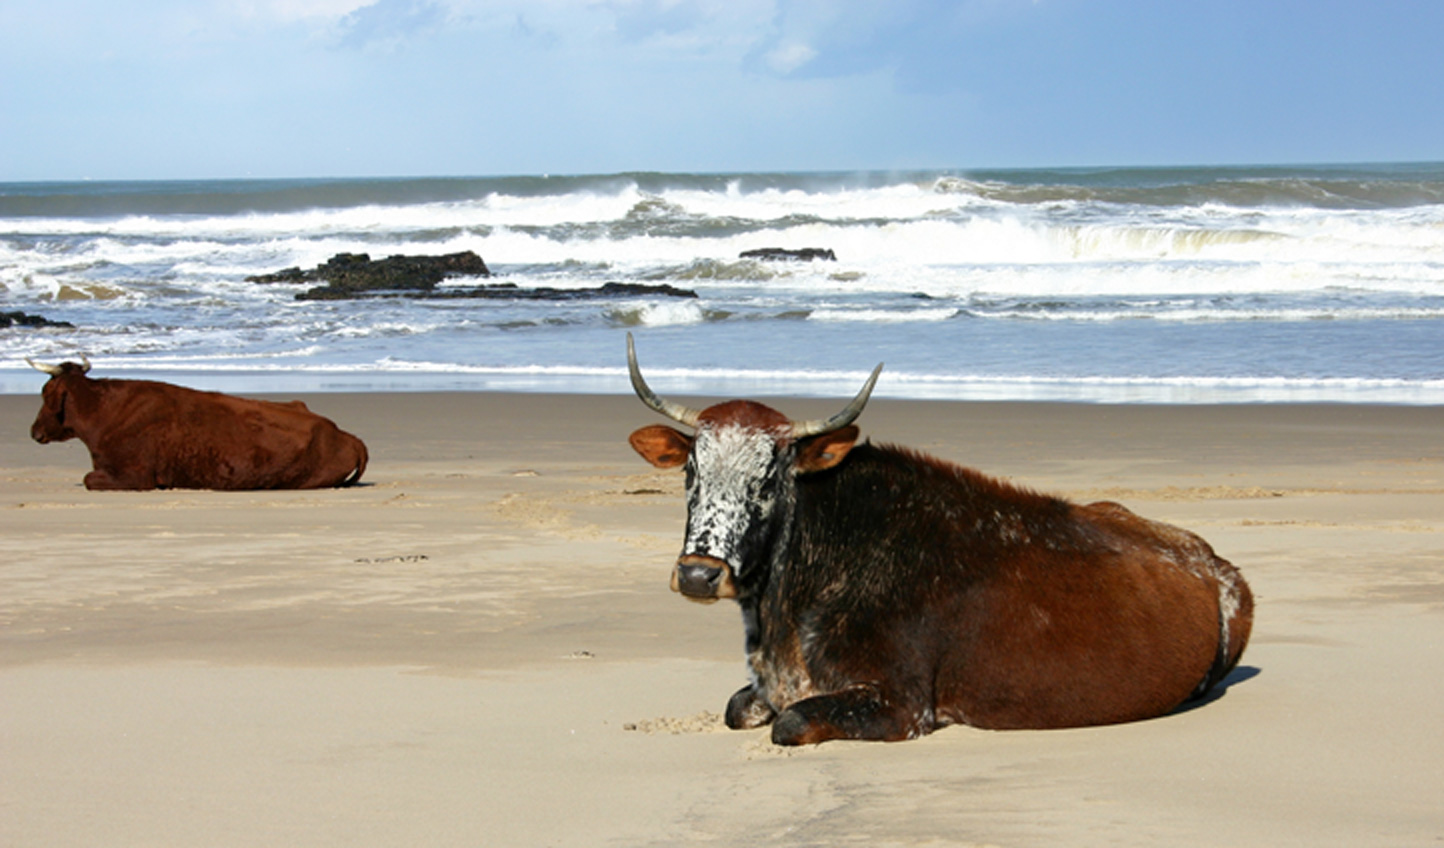 Rather than pesky seagulls you will see sun bathing cows on the beach-who knew?